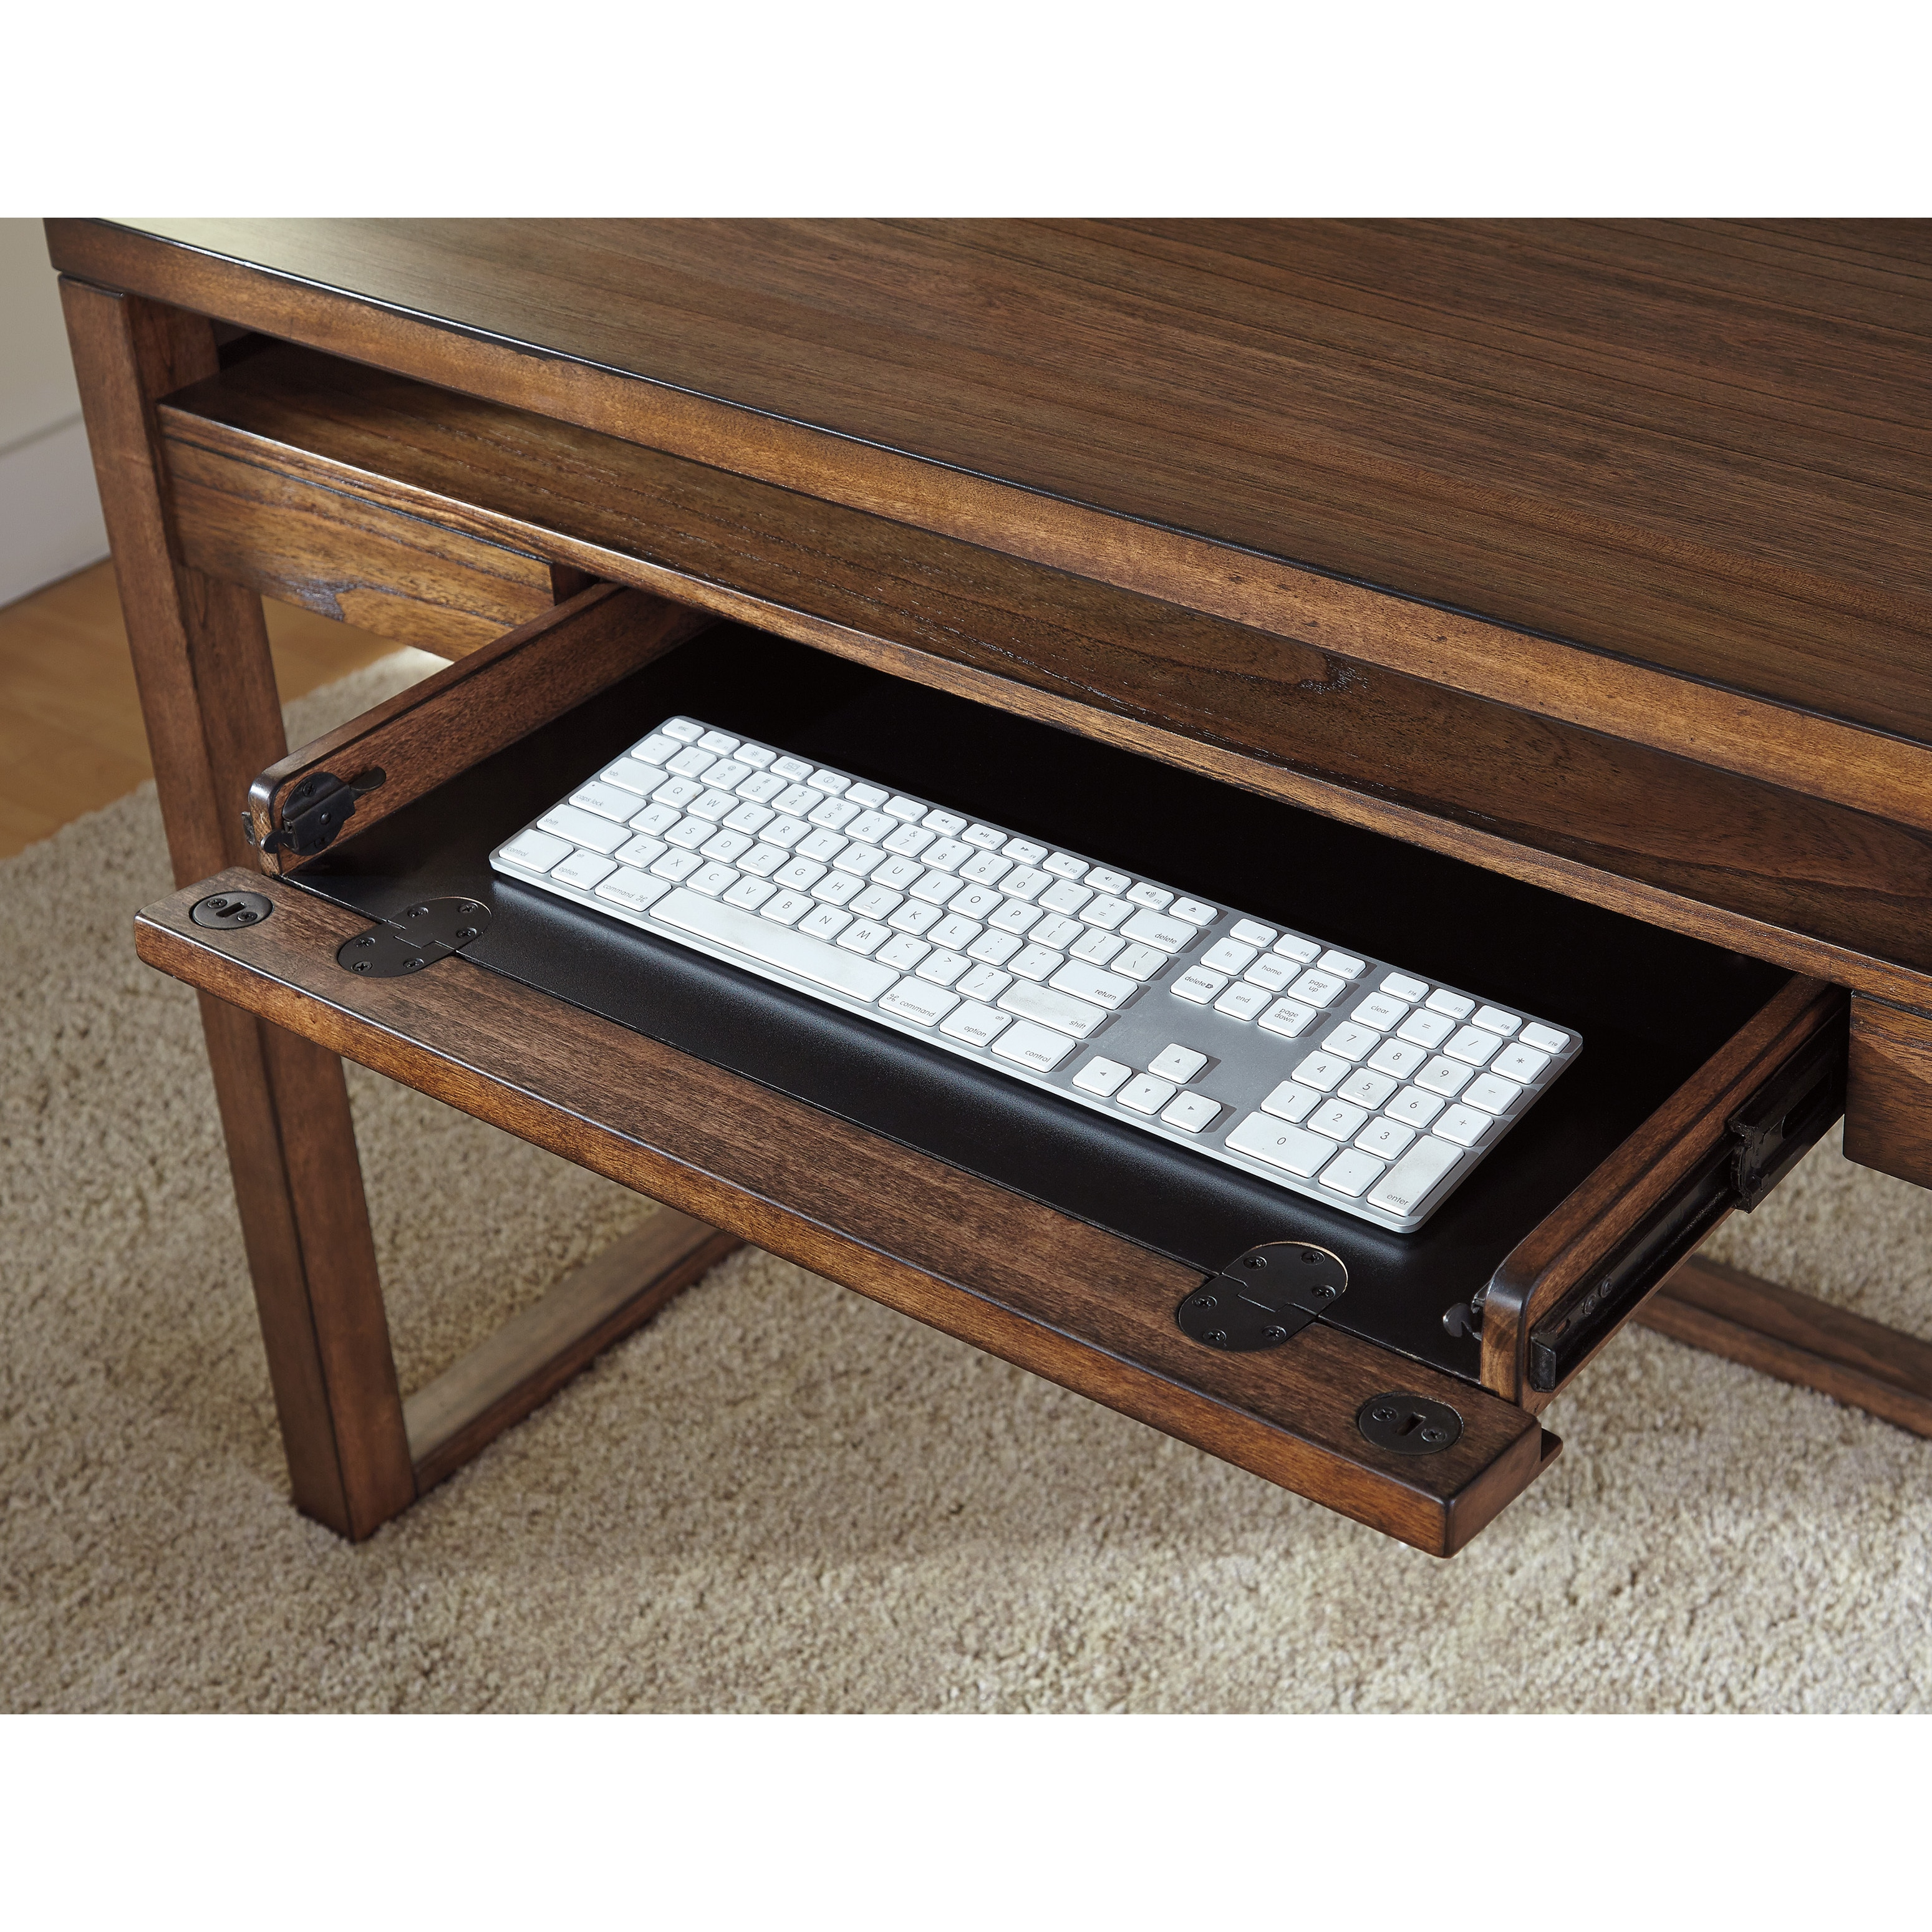 Shop Signature Design by Ashley Baybrin Home Office Small Desk ...